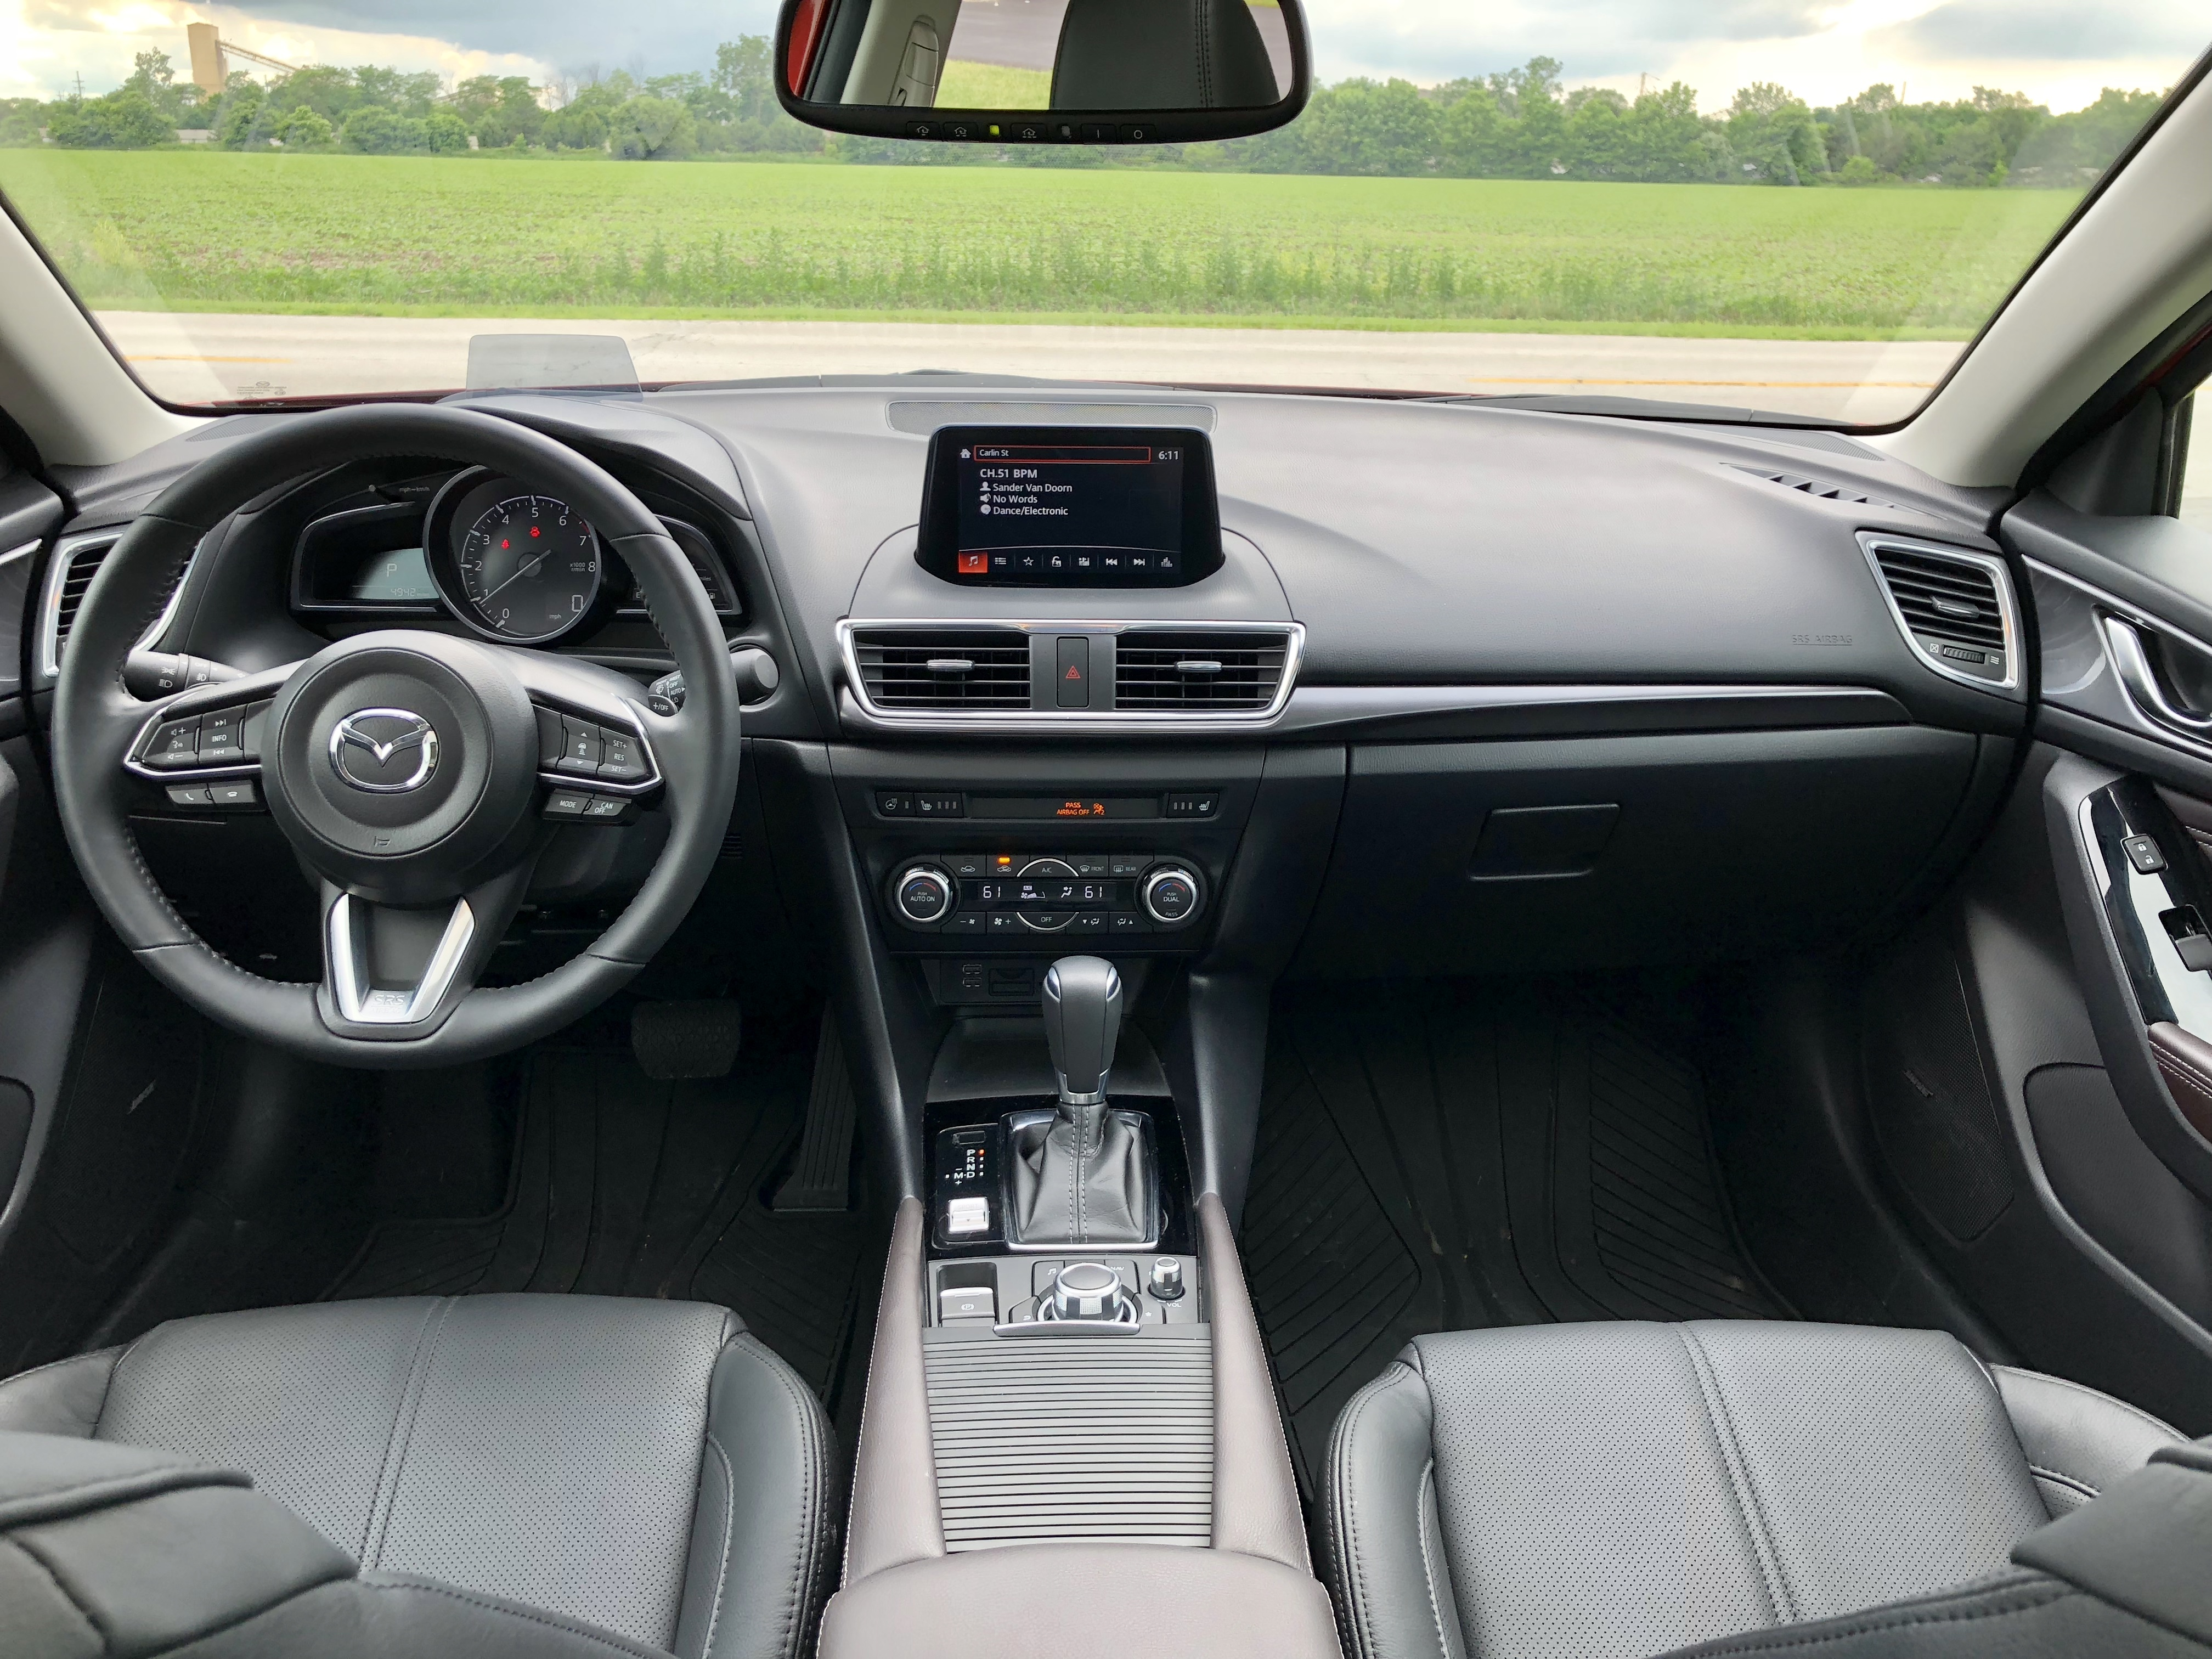 2018 Mazda 3 Review Rh Gottabemobile Com 2016 Mazda 6 Manual Transmission Review  2006 Mazda 6